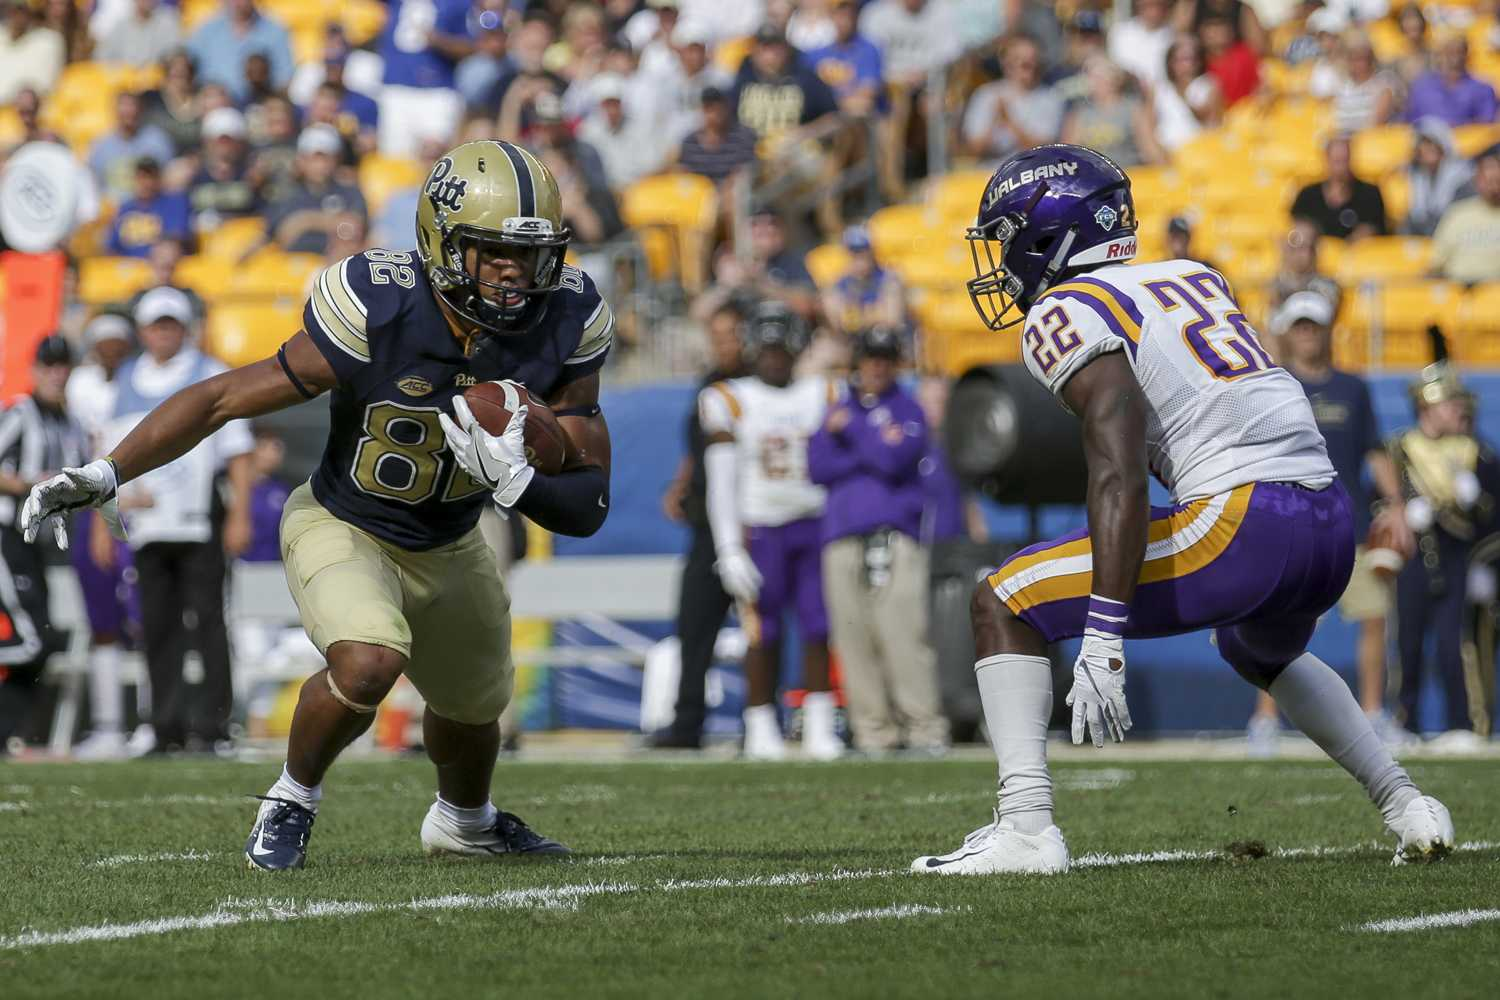 Redshirt senior wide receiver Rafael Araujo-Lopes scored two receiving touchdowns during Pitt's season opener against Albany. (Photo by Thomas Yang | Assistant Visual Editor)